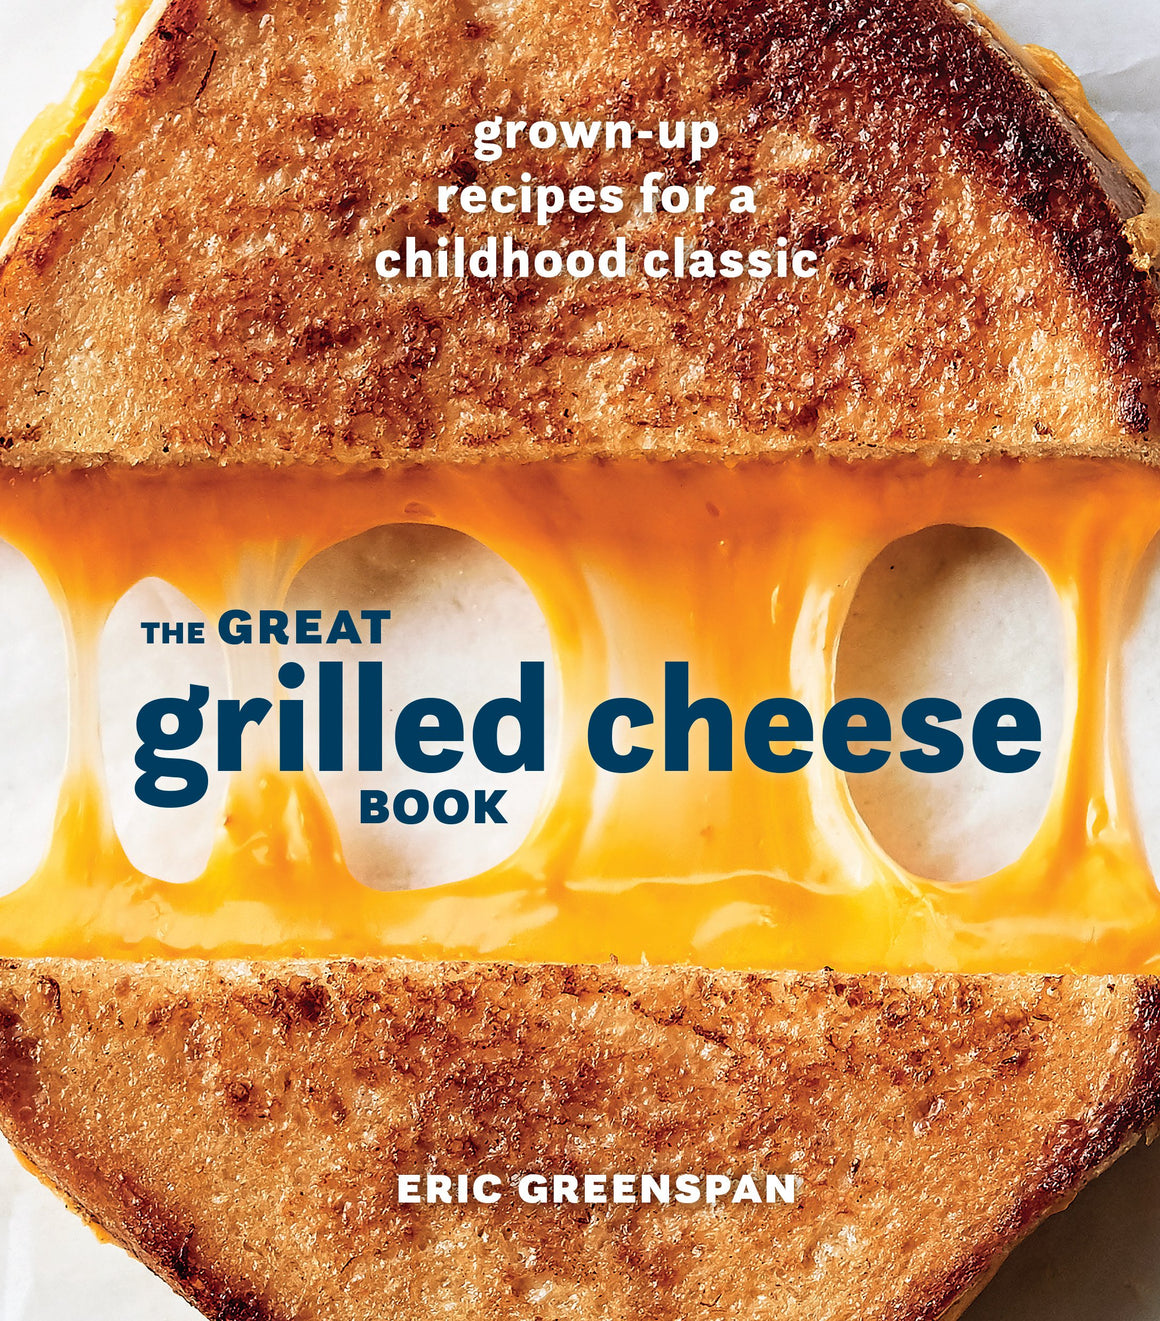 Eric Greenspan. The Great Grilled Cheese Book: Grown-Up Recipes for a Childhood Classic